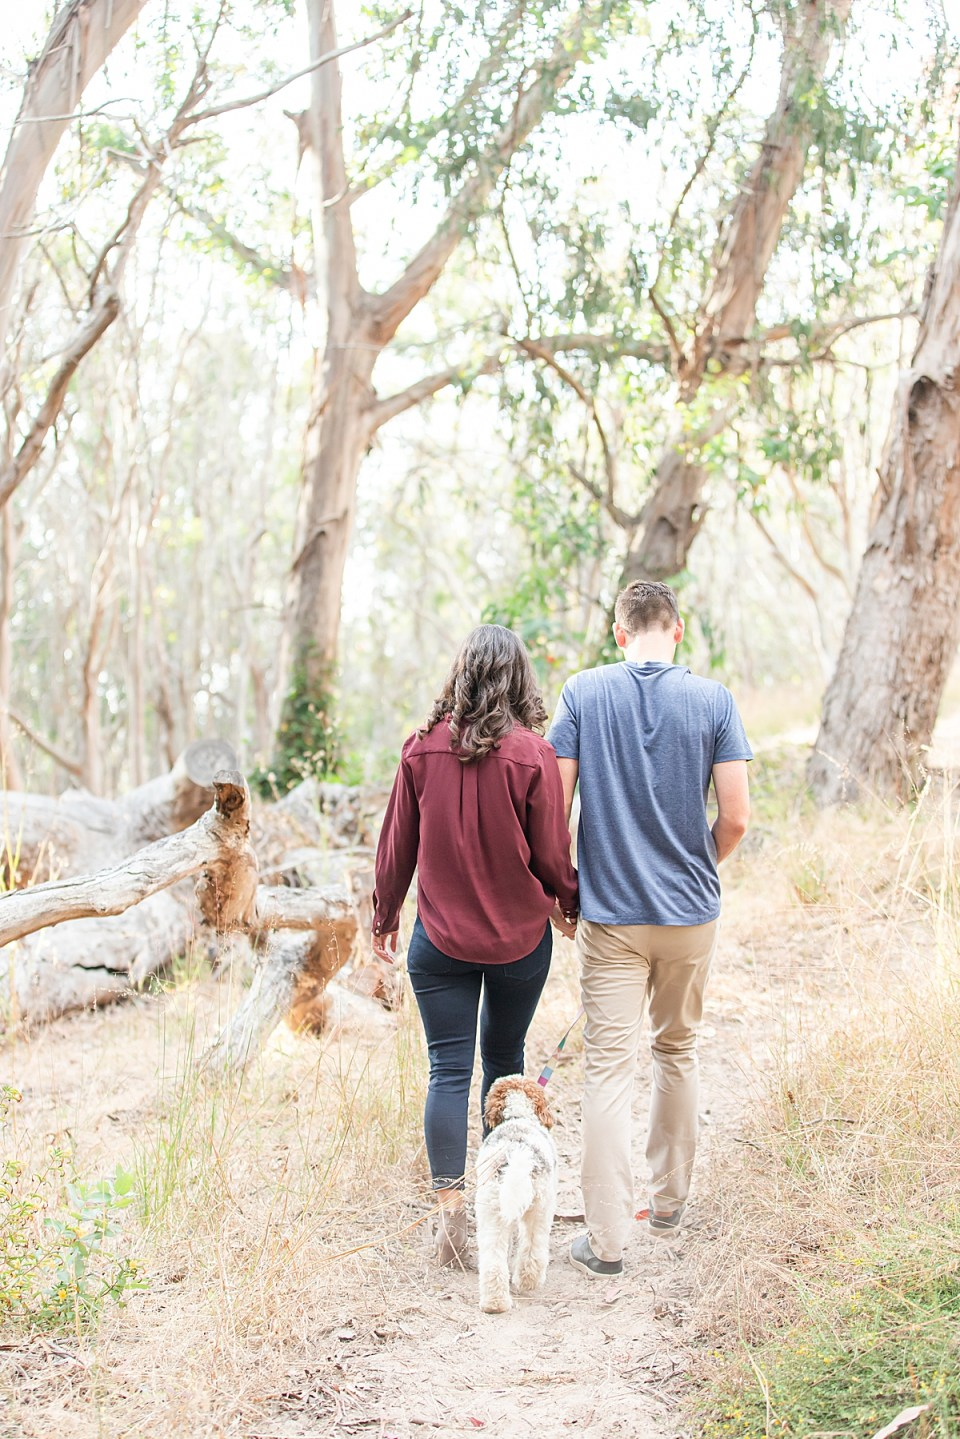 Lauren & Scott walking their puppy away from the camera during their Montaña de Oro engagement session.